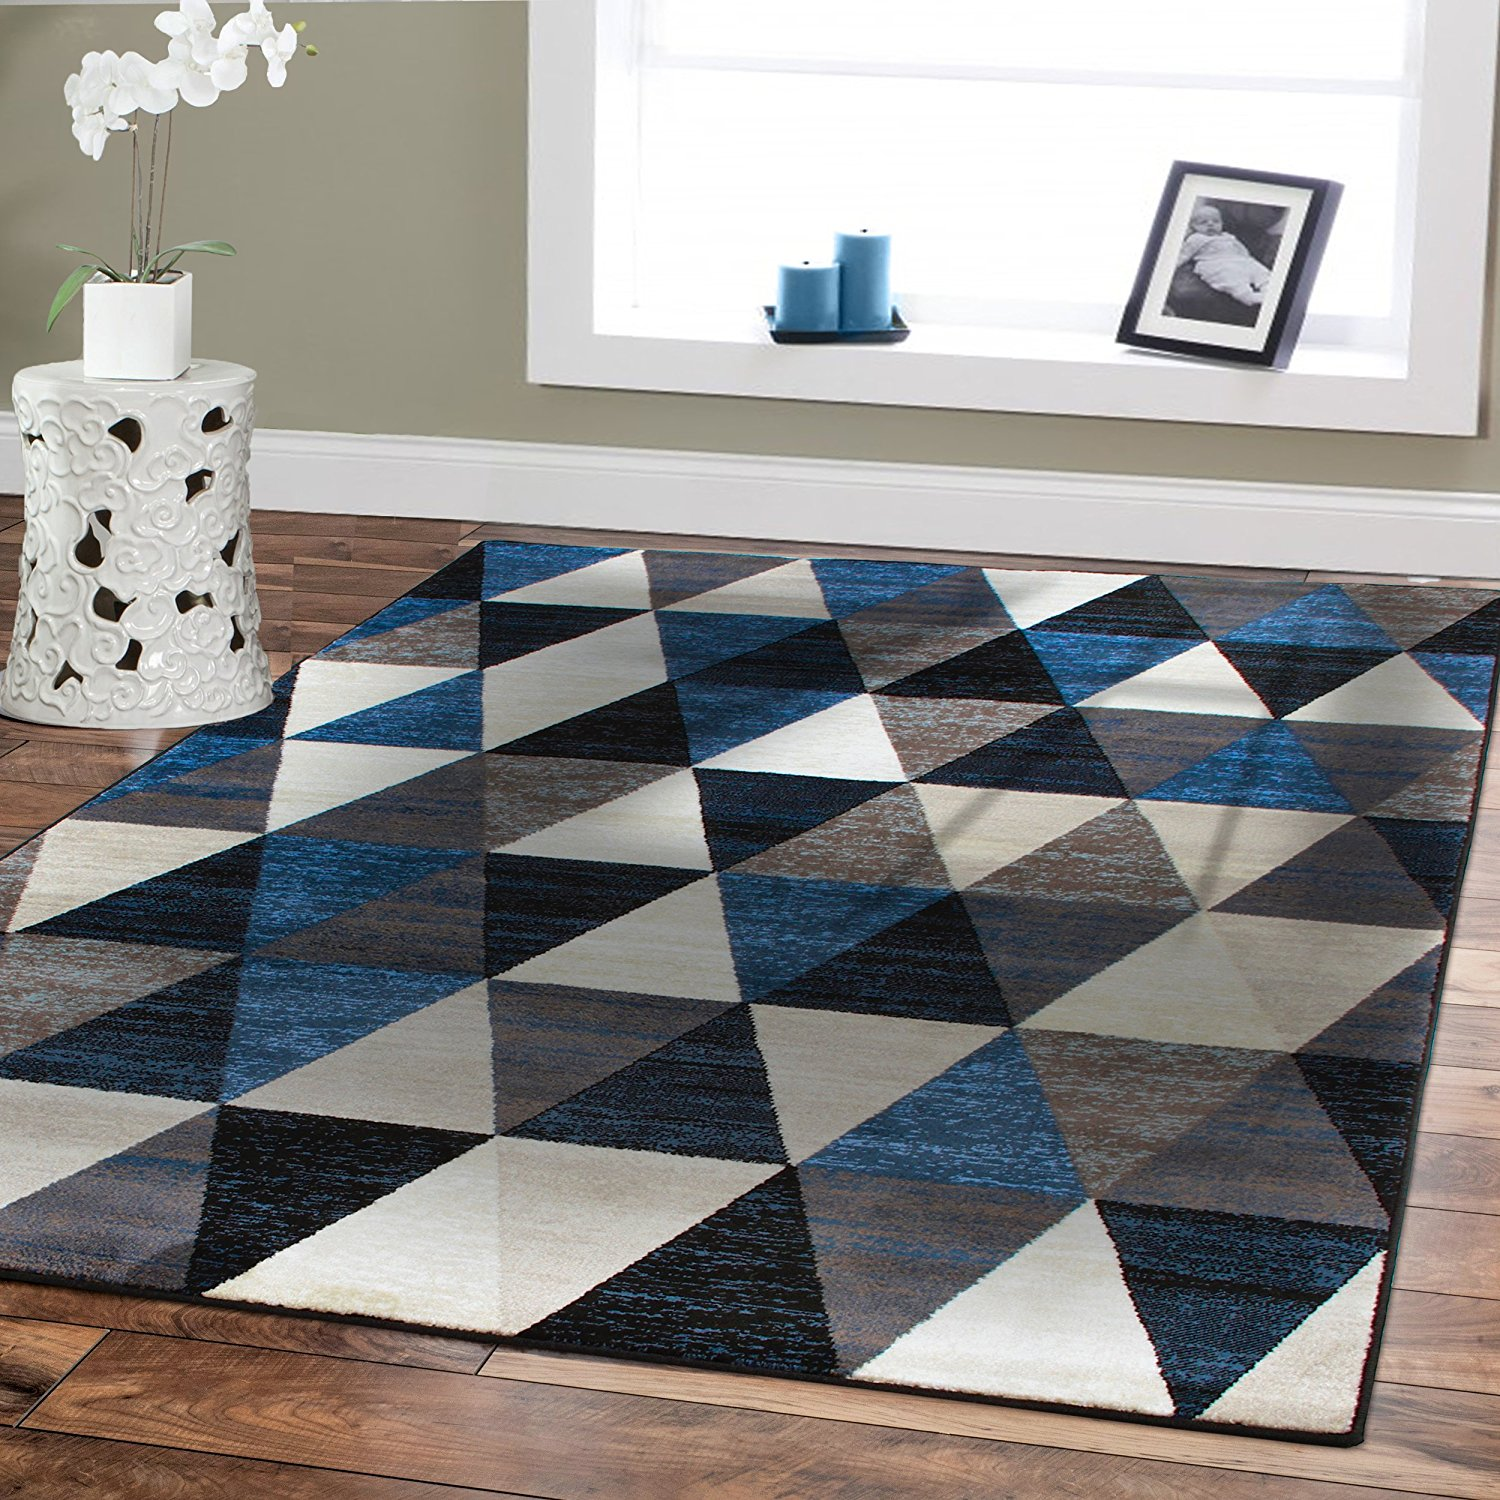 amazon.com: premium large rugs 8x11 modern rugs for brown sofa blue rugs LGOCYOL